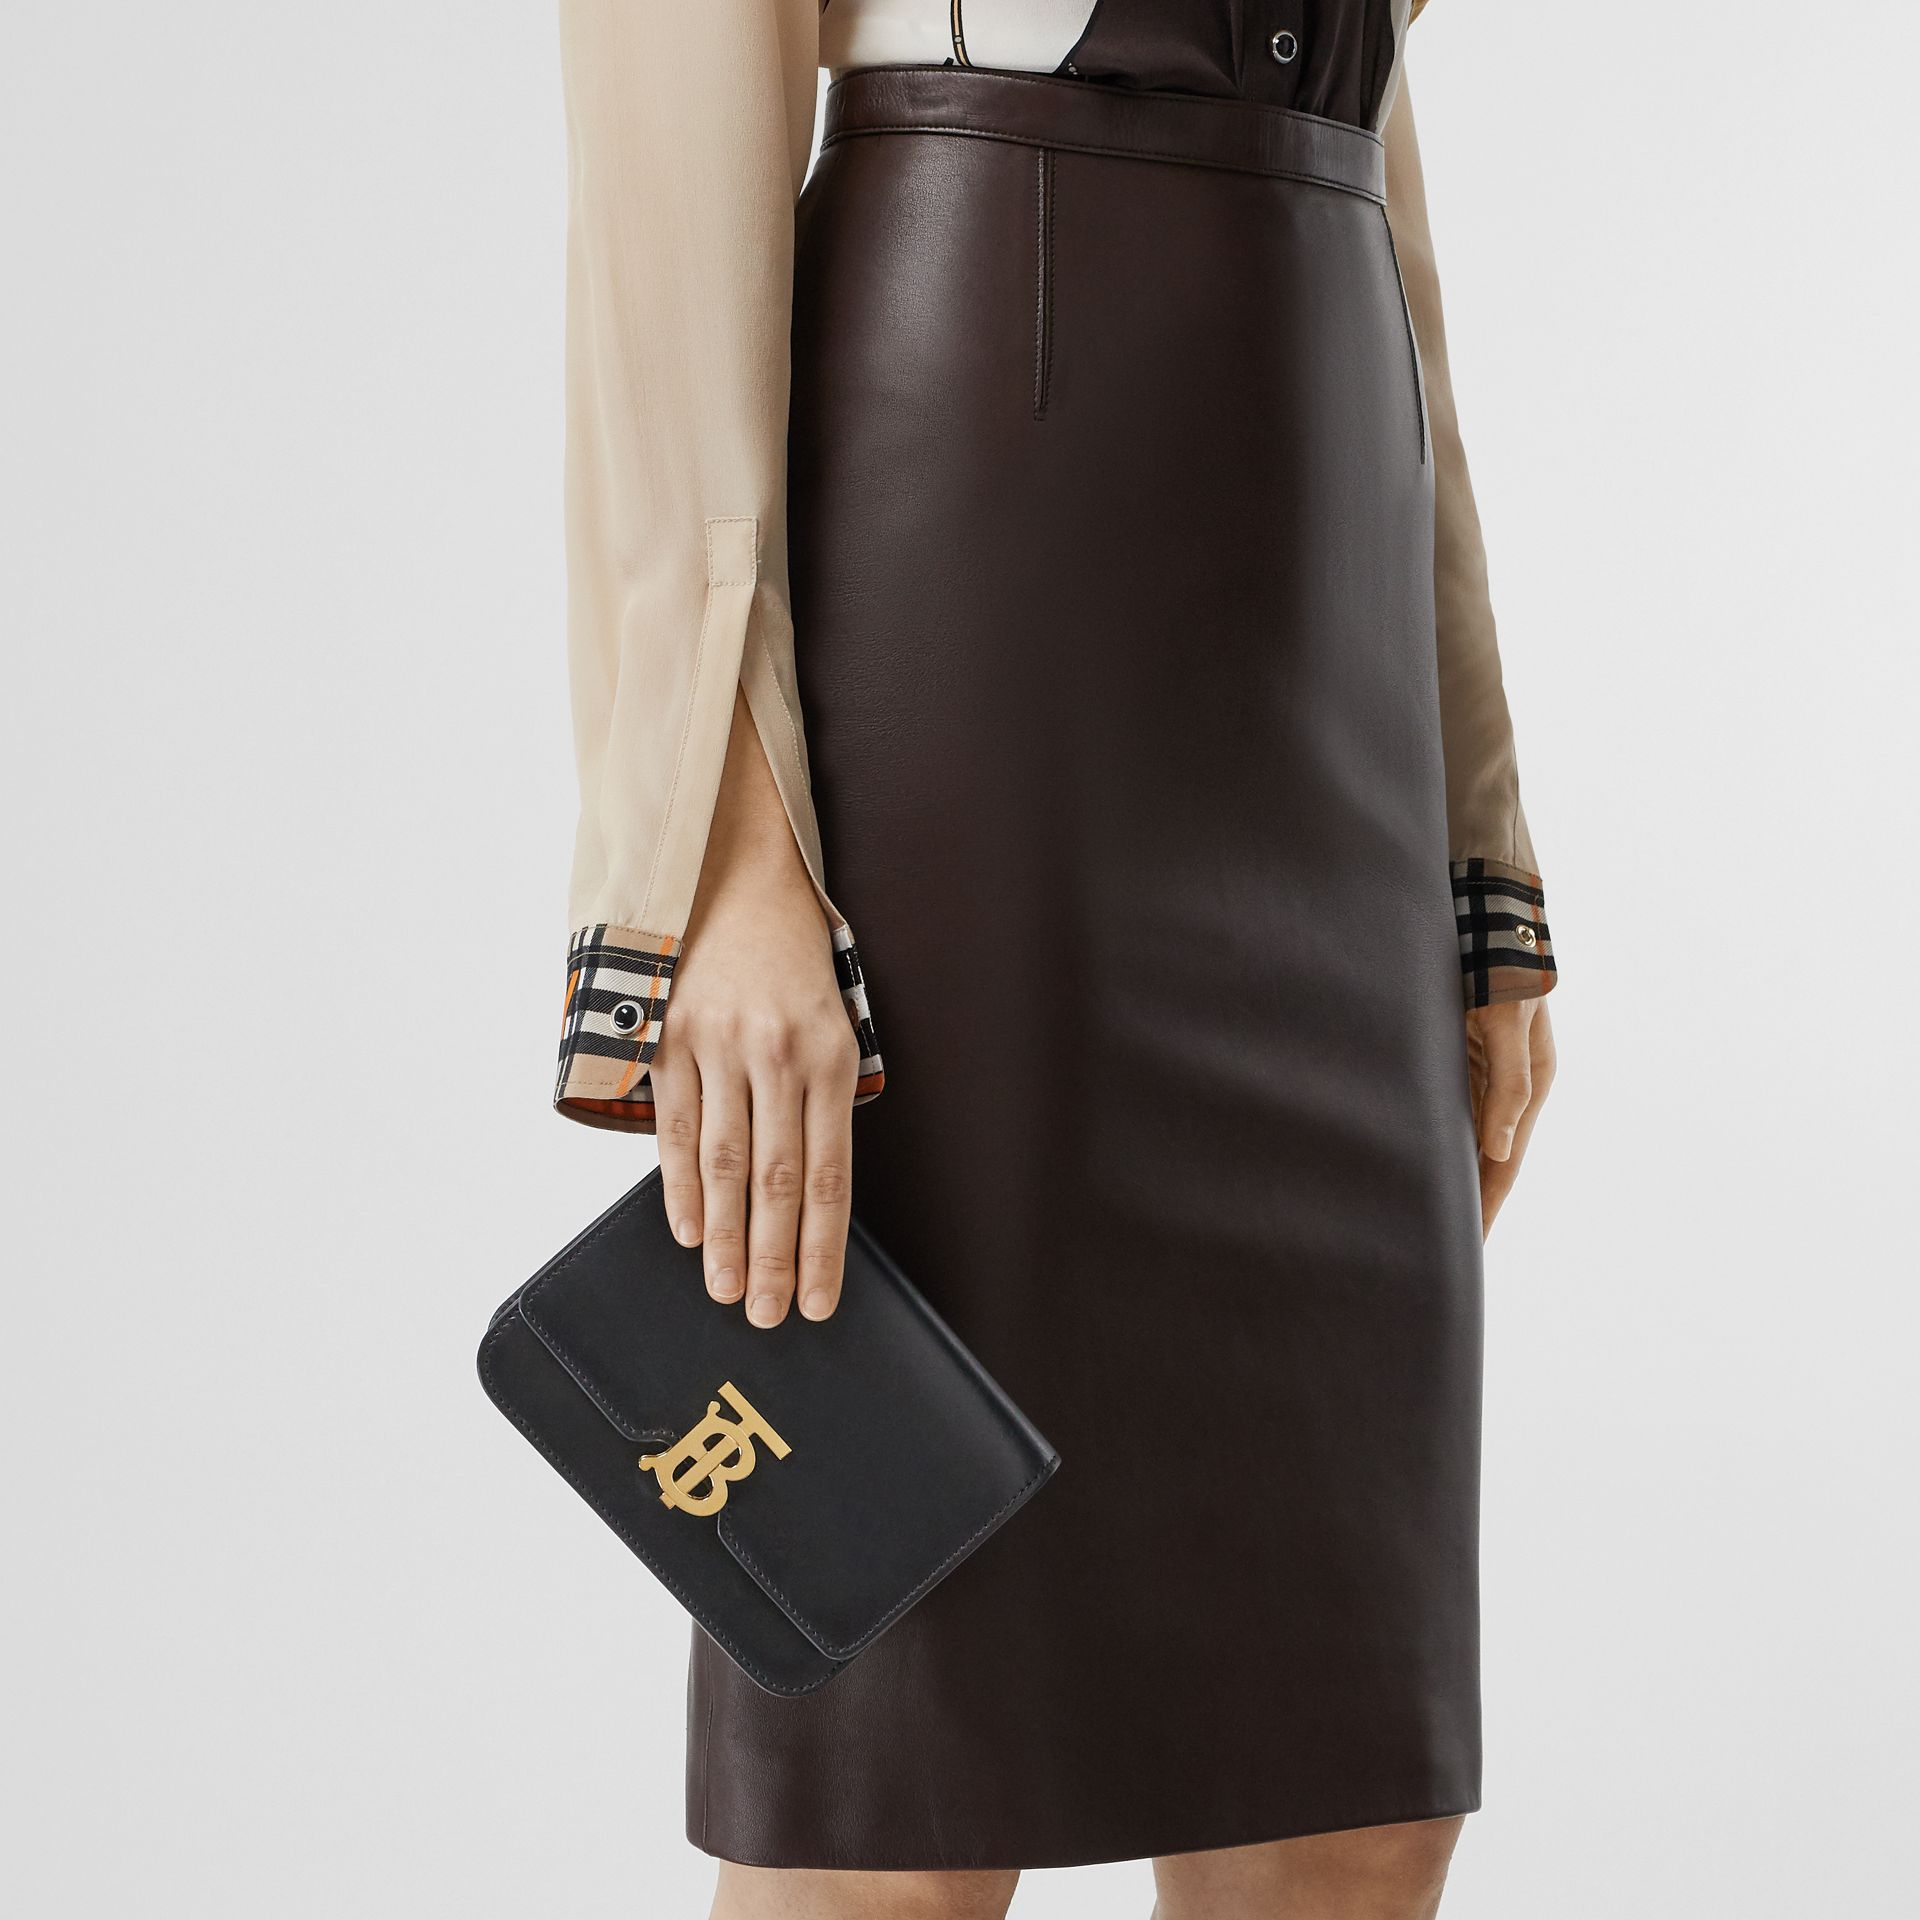 Belted Leather TB Bag in Black - Women | Burberry - gallery image 2